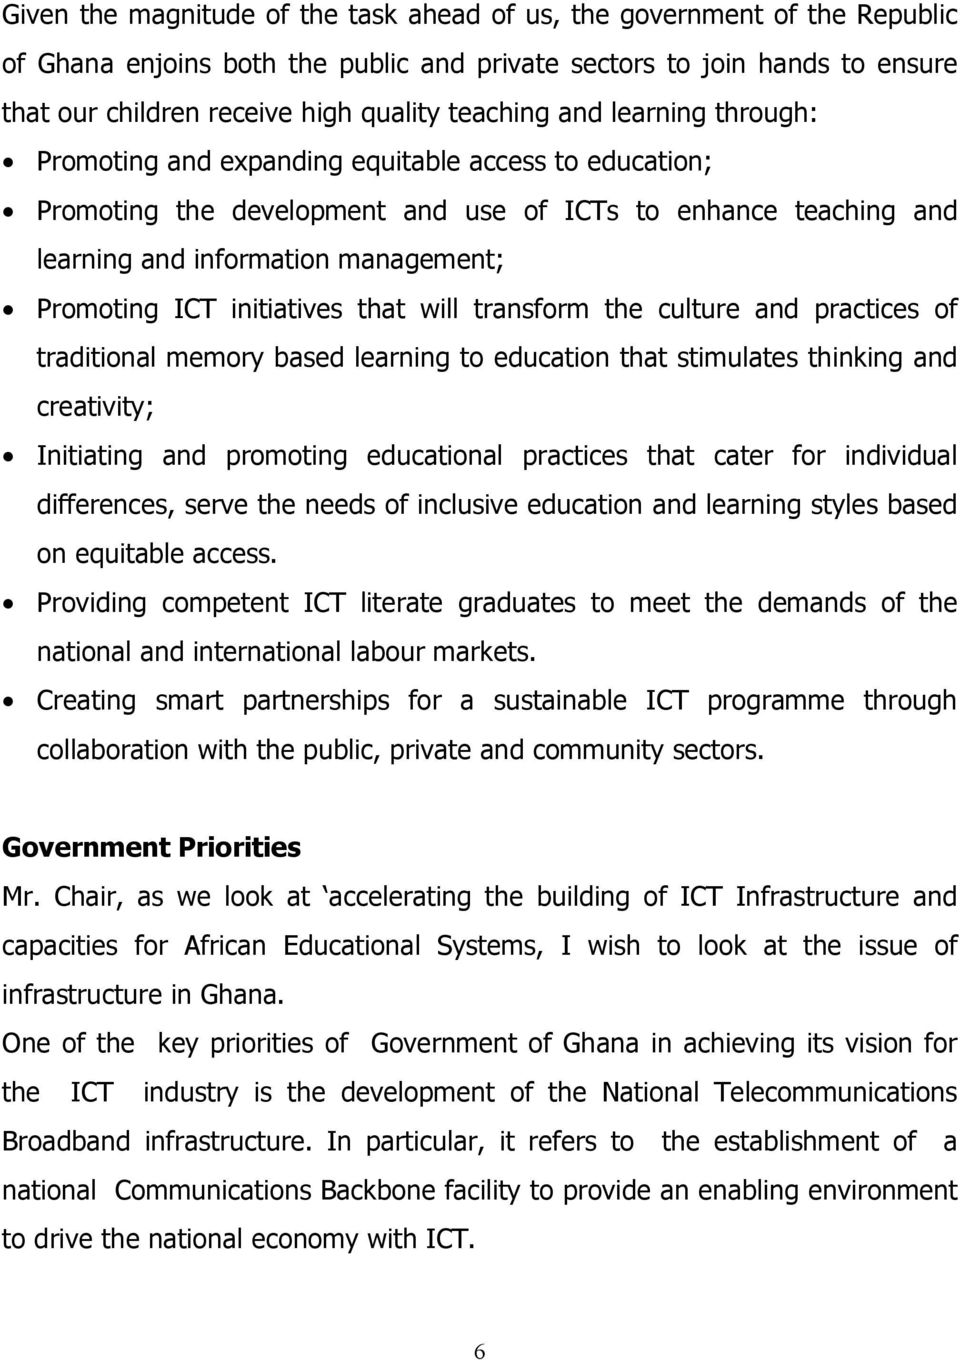 ICT initiatives that will transform the culture and practices of traditional memory based learning to education that stimulates thinking and creativity; Initiating and promoting educational practices